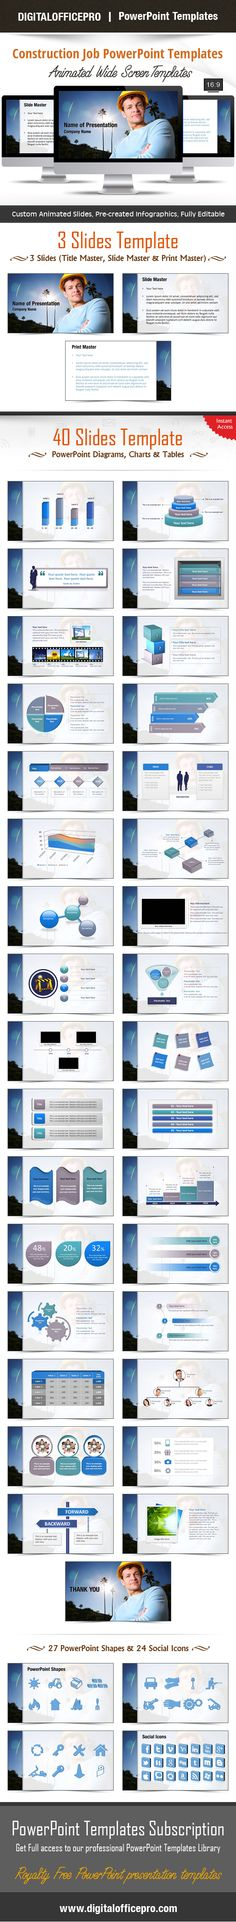 Impress and Engage your audience with Construction Job PowerPoint Template and Construction Job PowerPoint Backgrounds from DigitalOfficePro. Each template comes with a set of PowerPoint Diagrams, Charts & Shapes and are available for instant download.